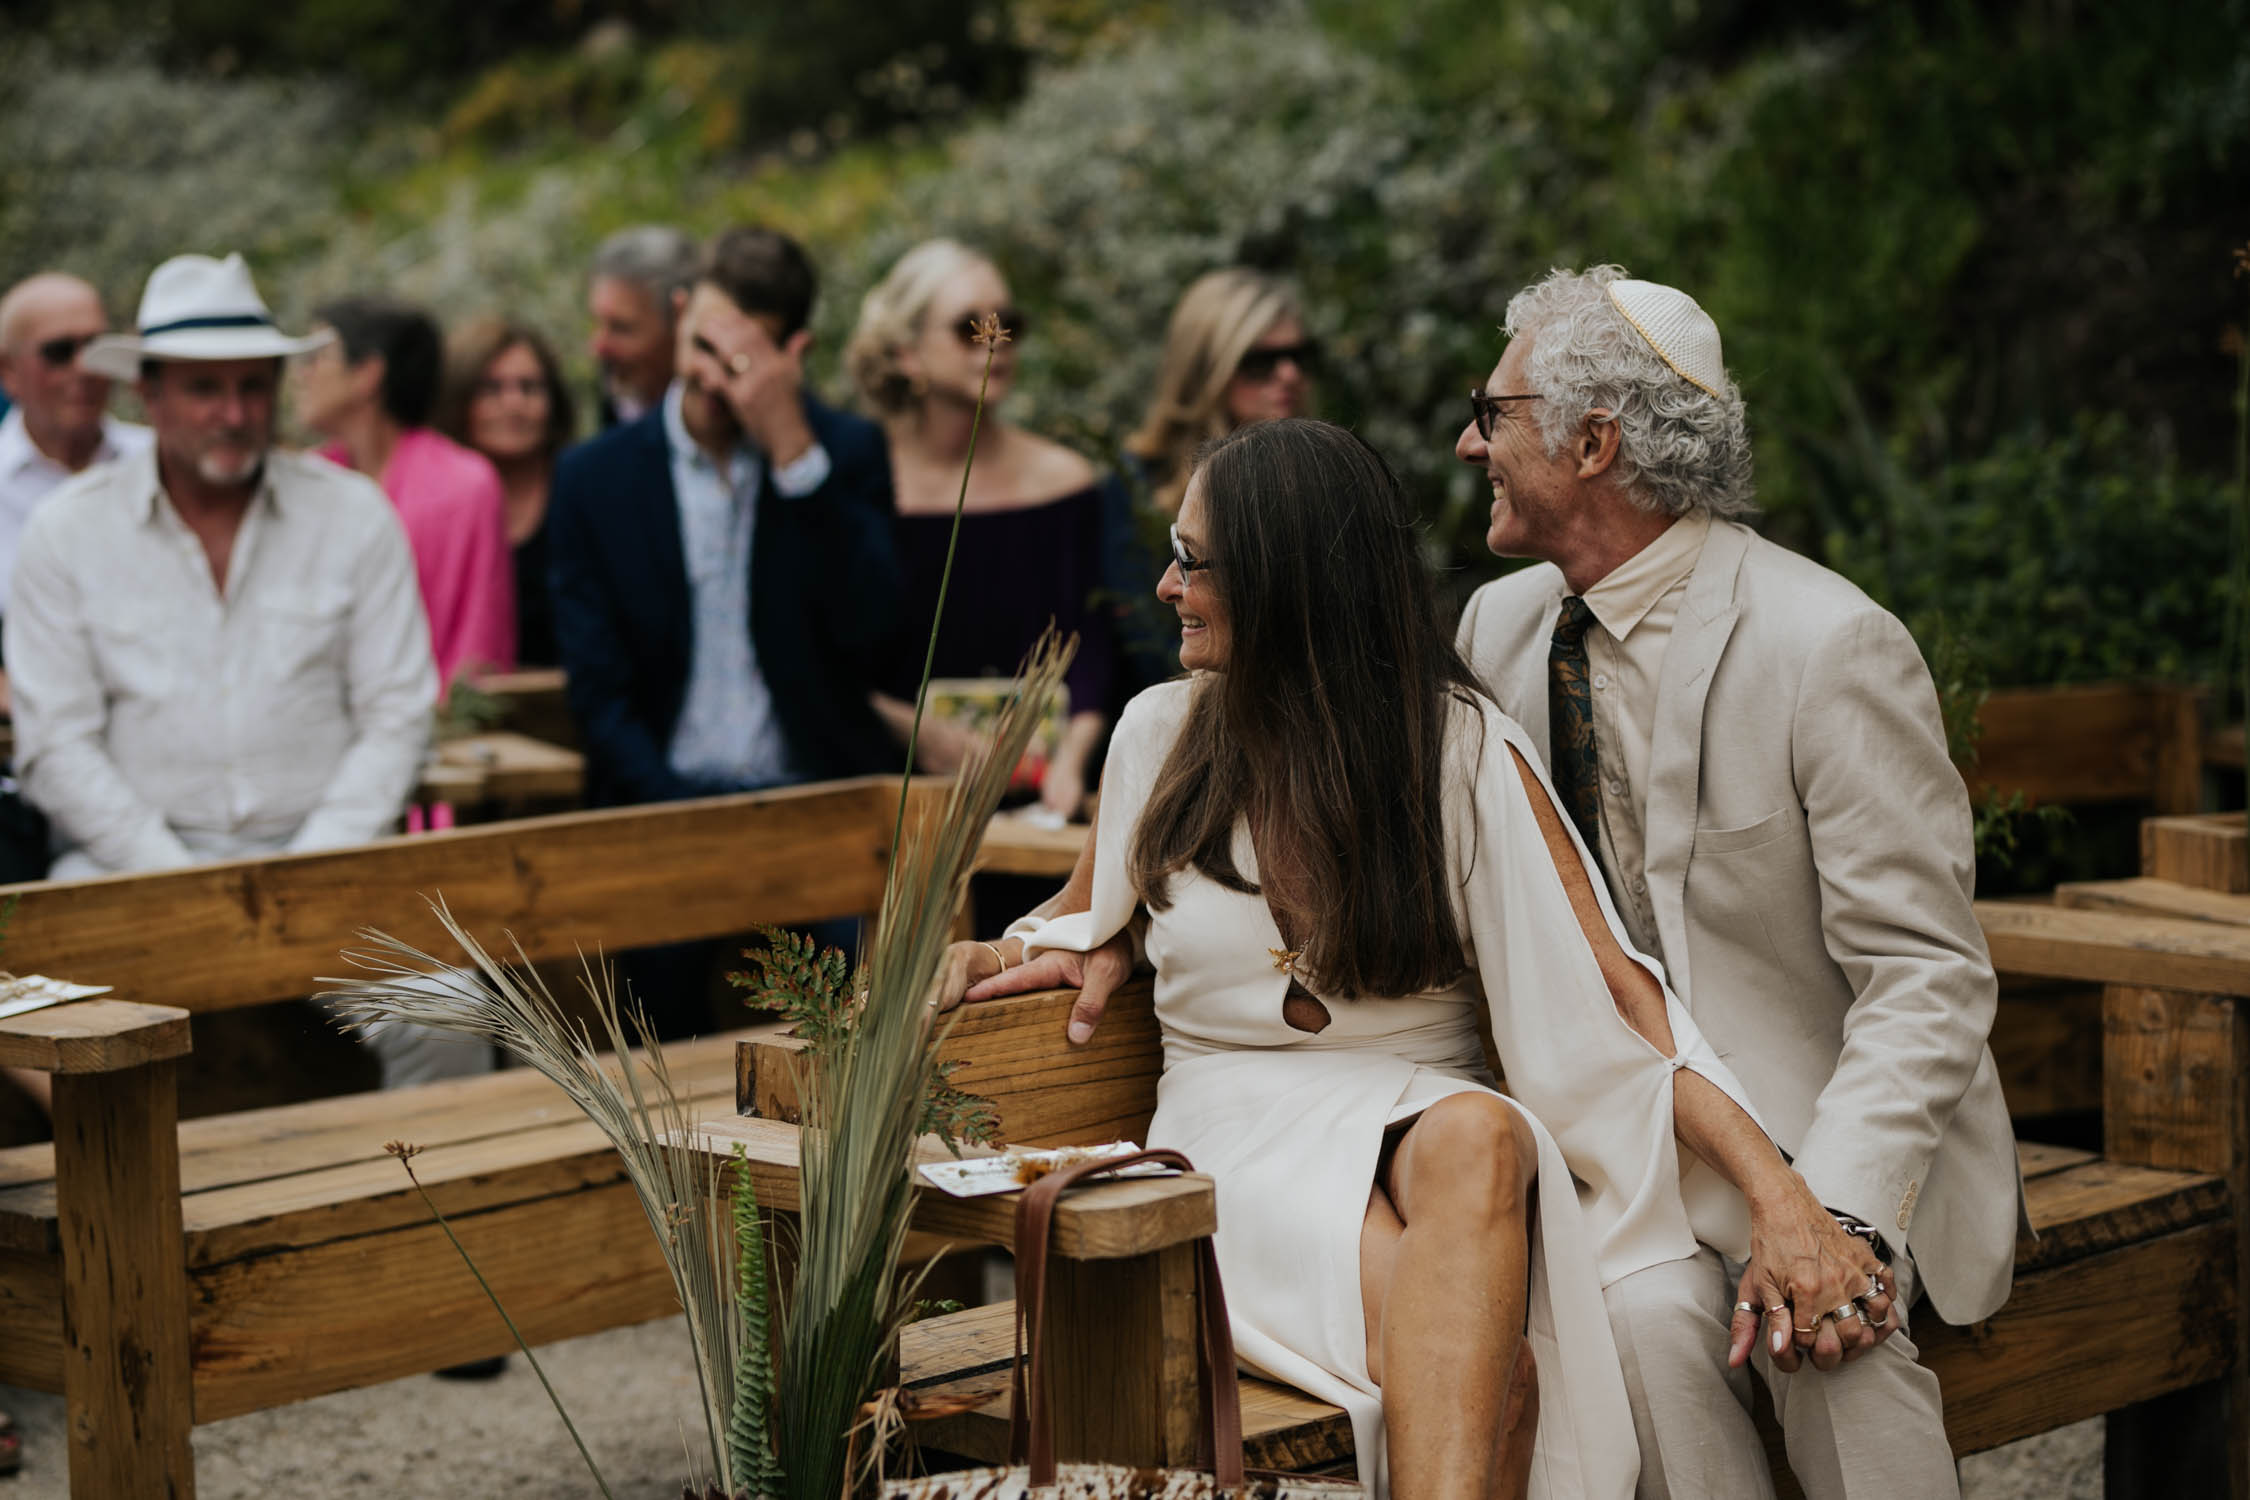 Emotional photo of groom's parents watch their soon to be daughter in law walk down the aisle